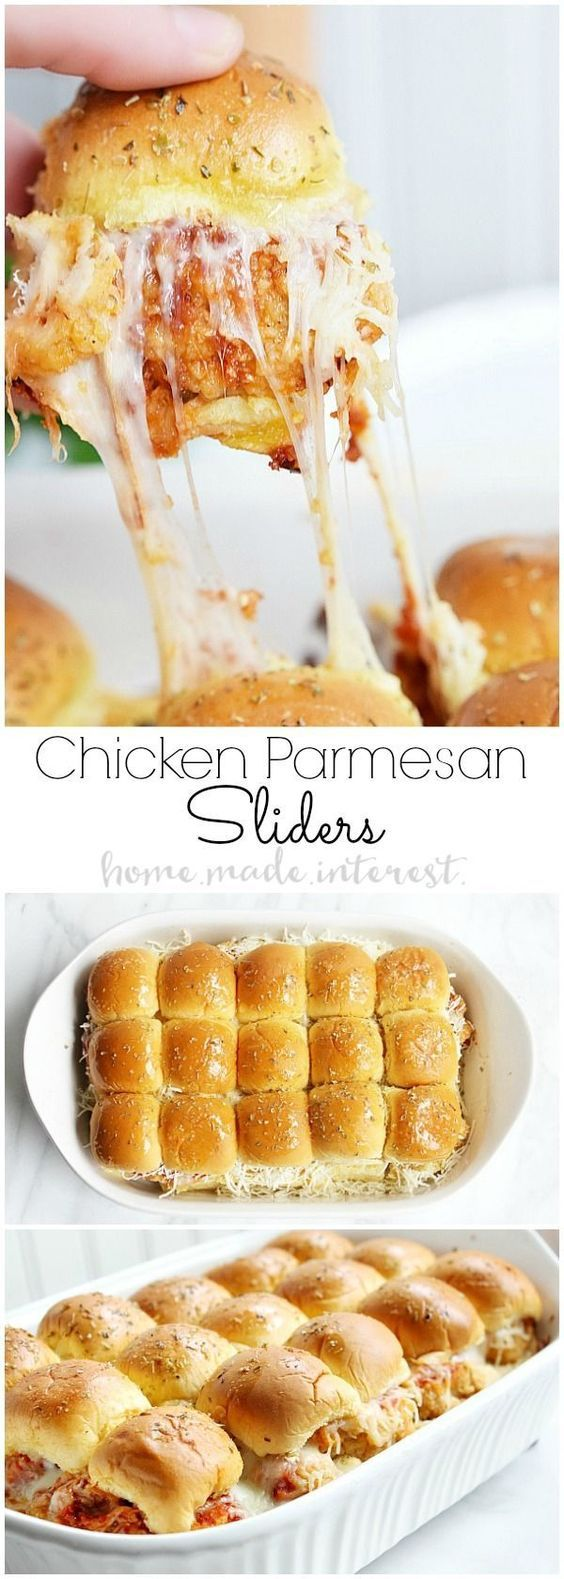 These Chicken Parmesan sliders are an easy recipe that everyone is going to love. Fried chicken tenders, tomato sauce, and lots of mozzarella cheese make this slider recipe a sure win. Whether it is a game day recipe or a father's day recipe you are